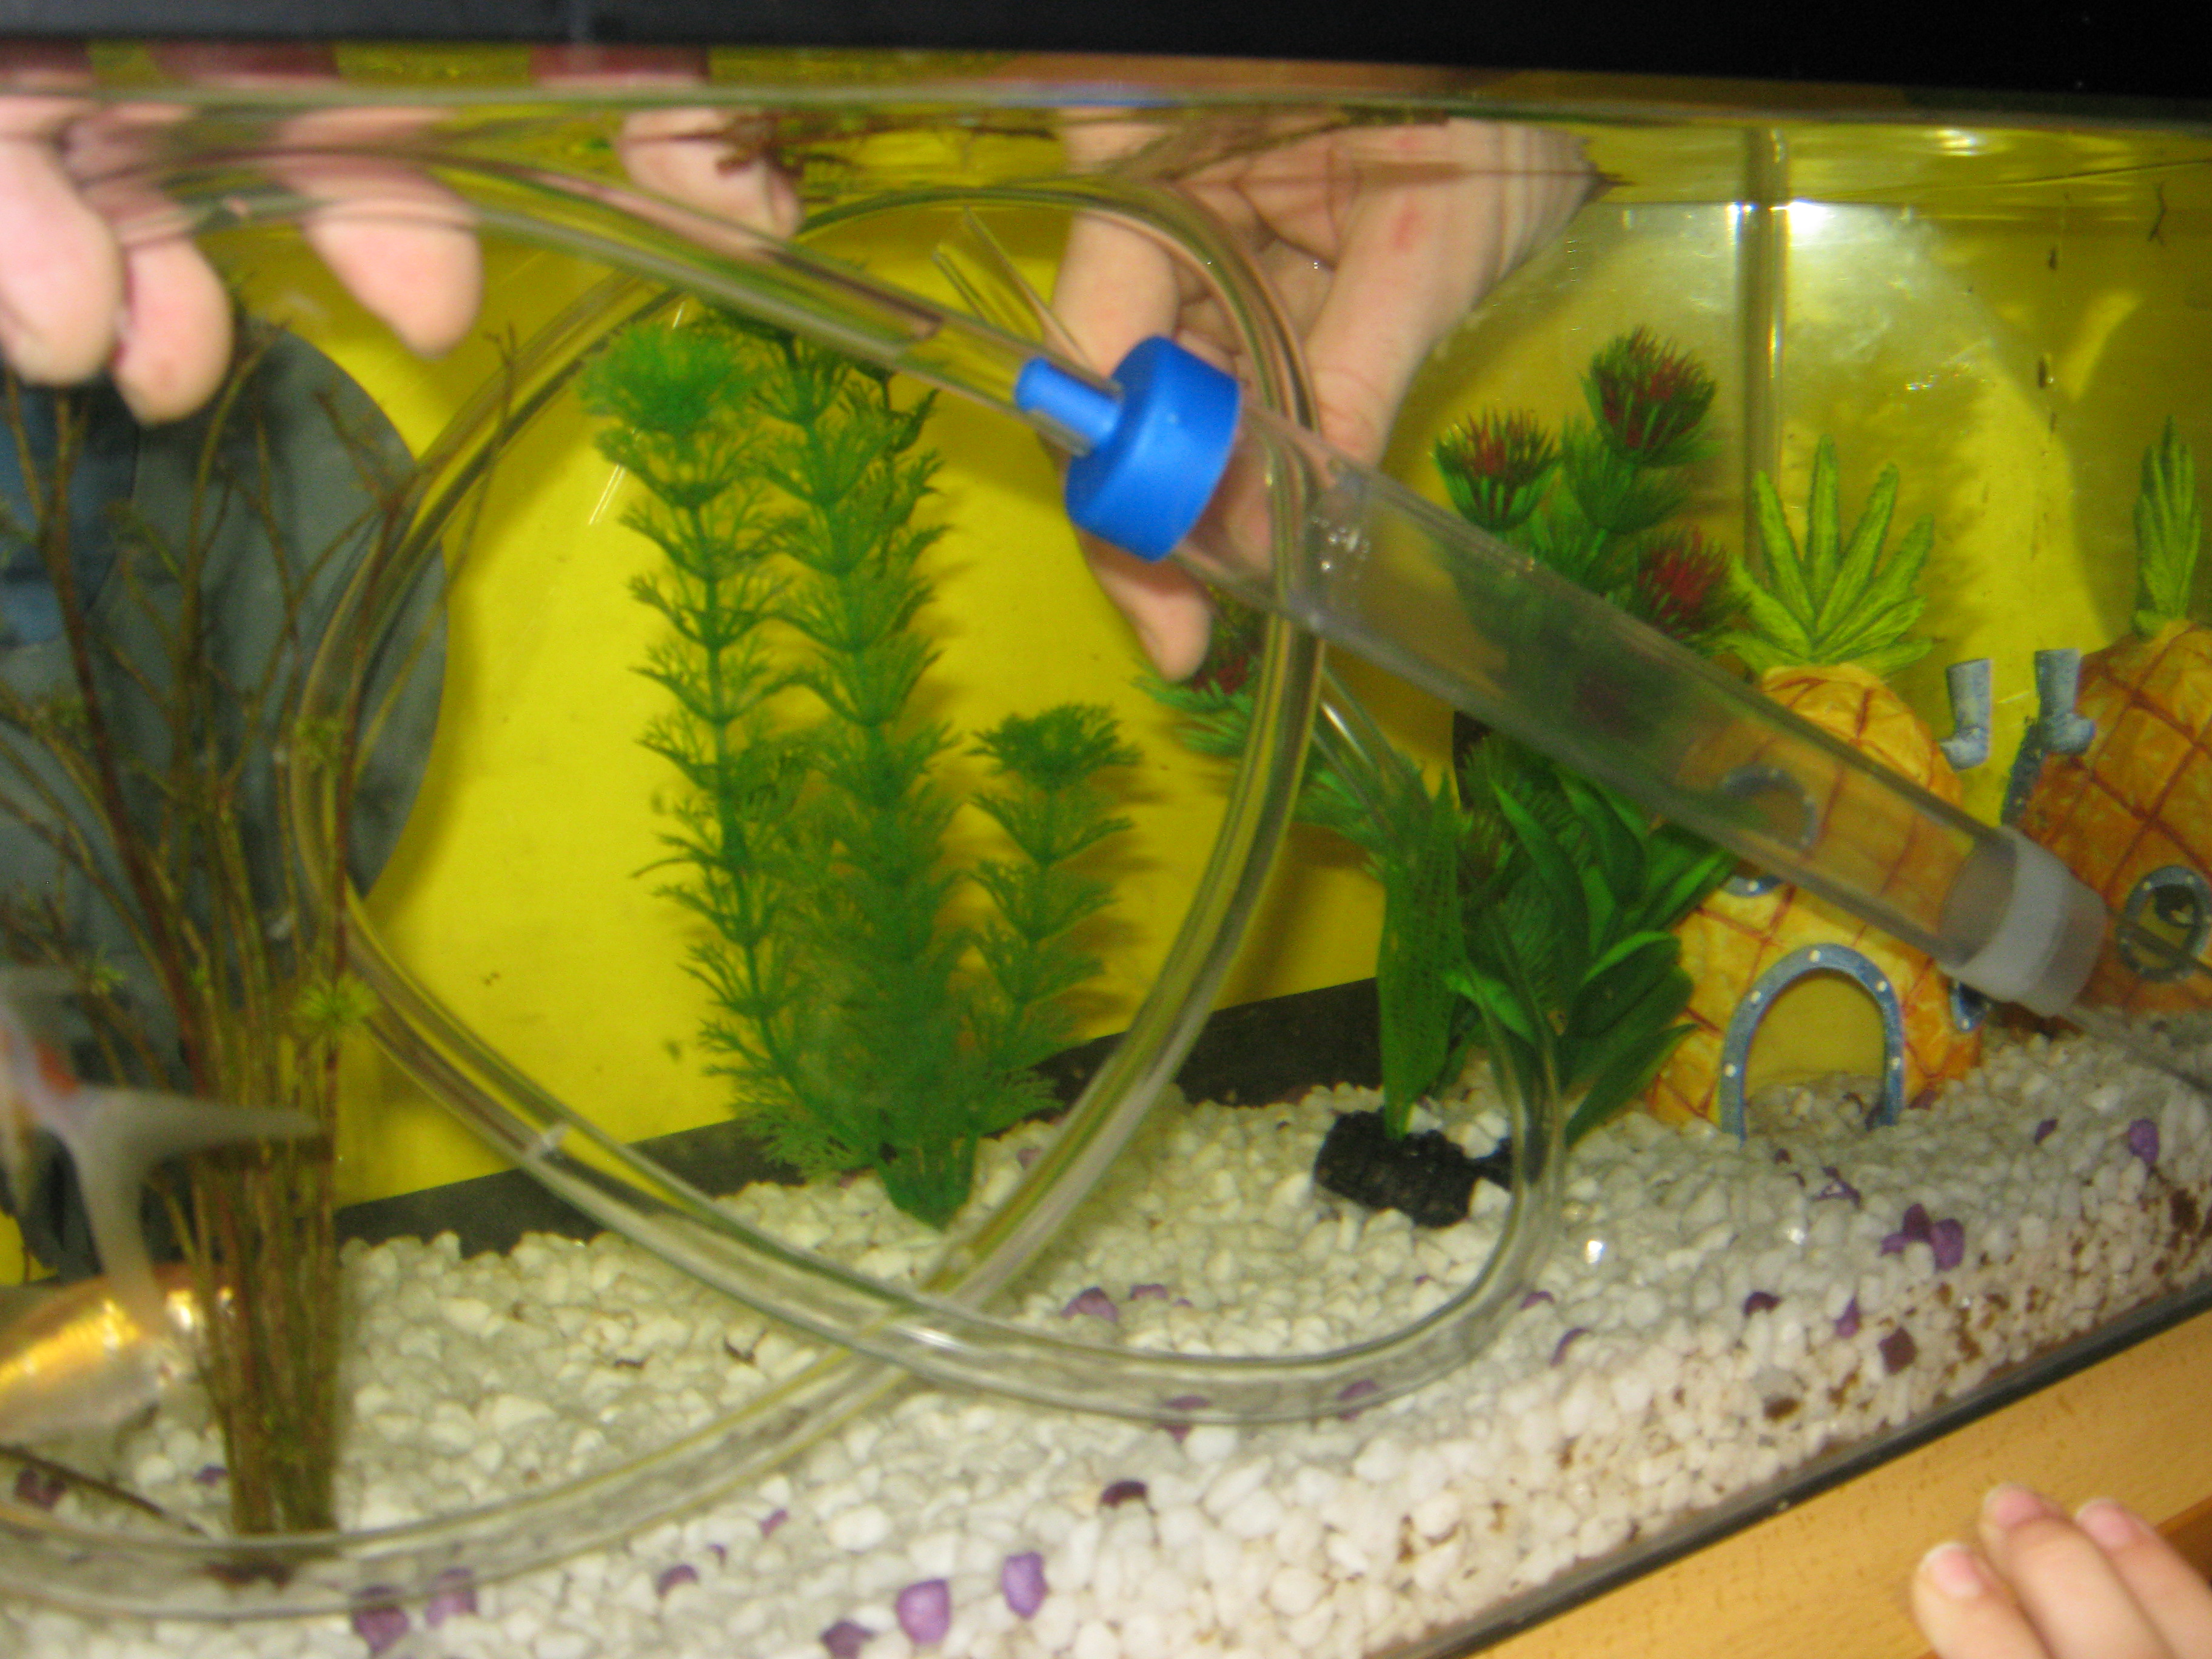 Cleaning the fish tank class 4oq 39 s blog for How to clean fish tank filter